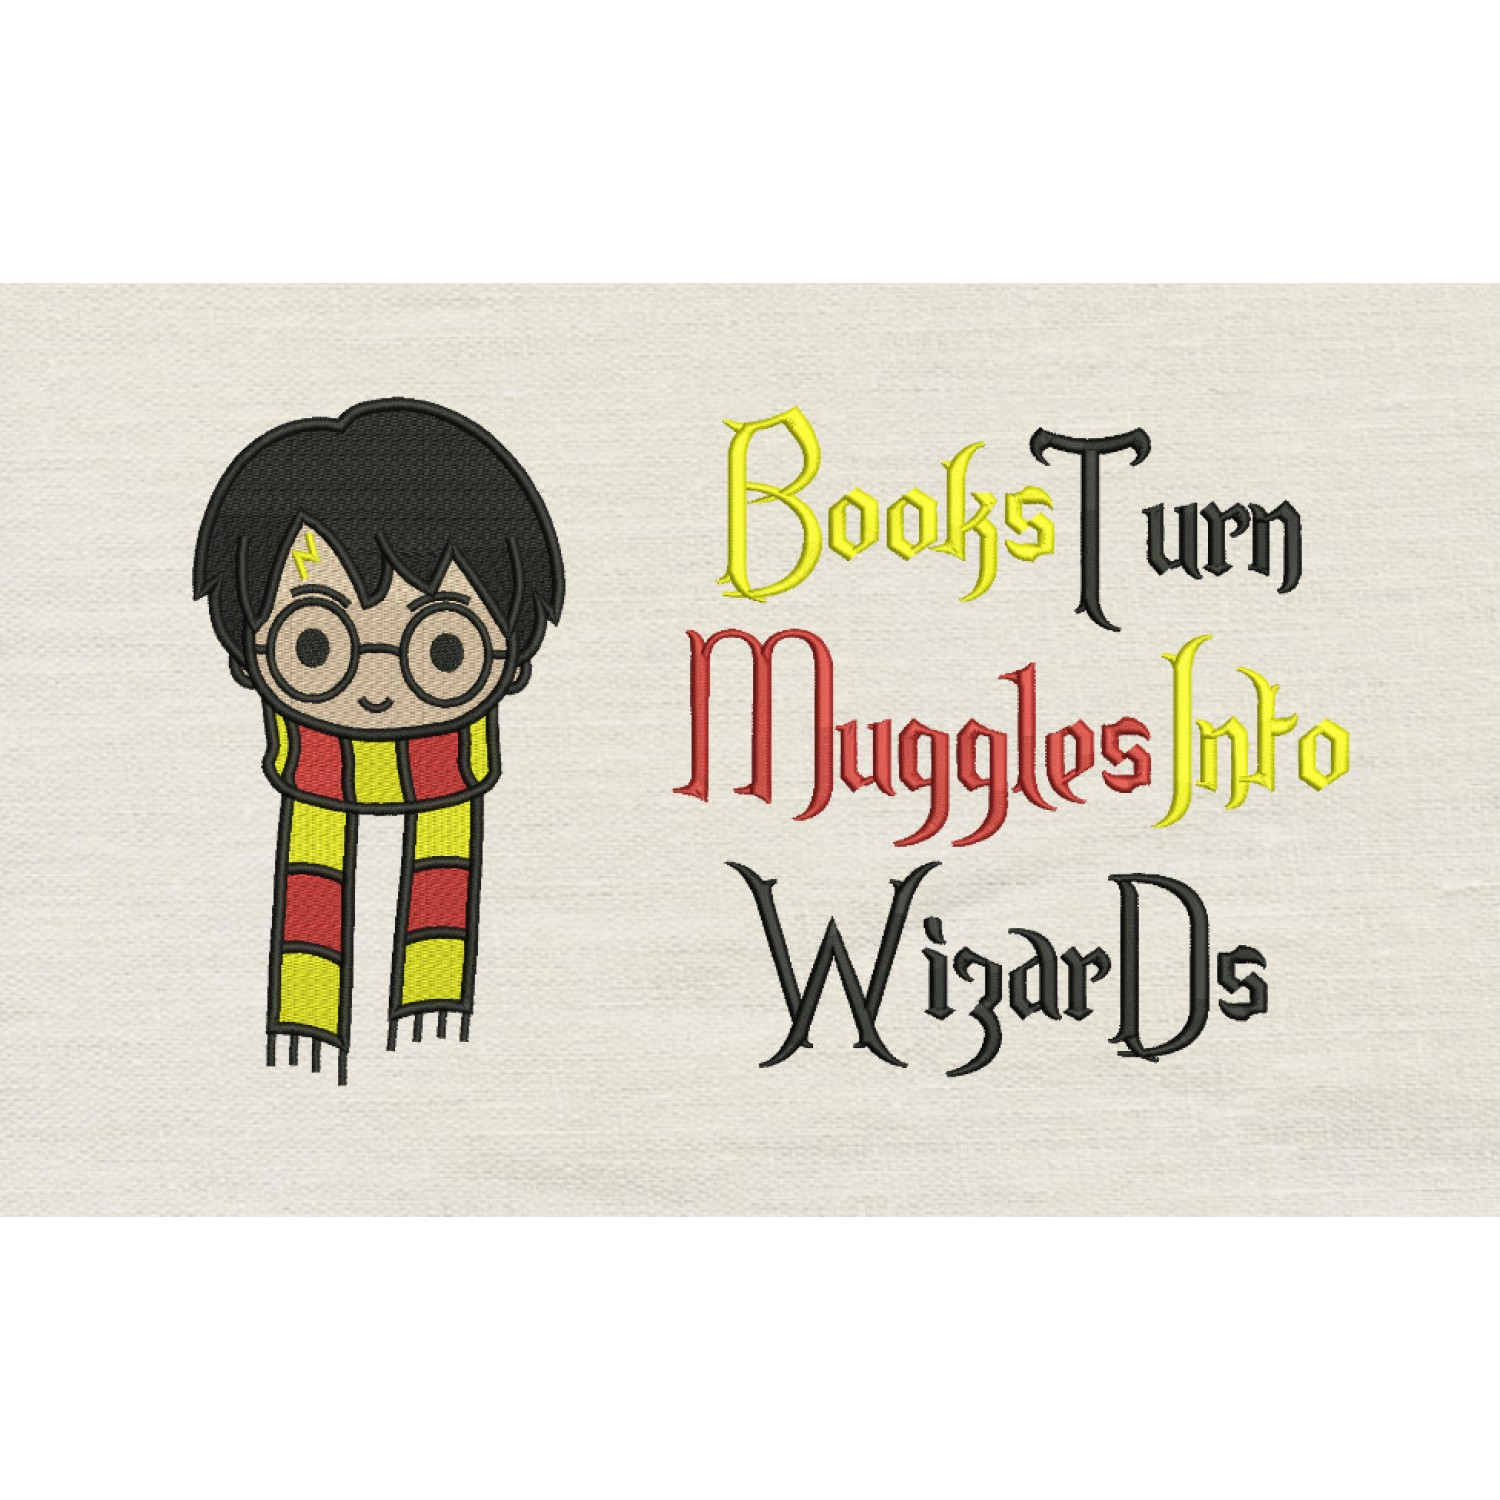 Harry potter scarf with Books turn